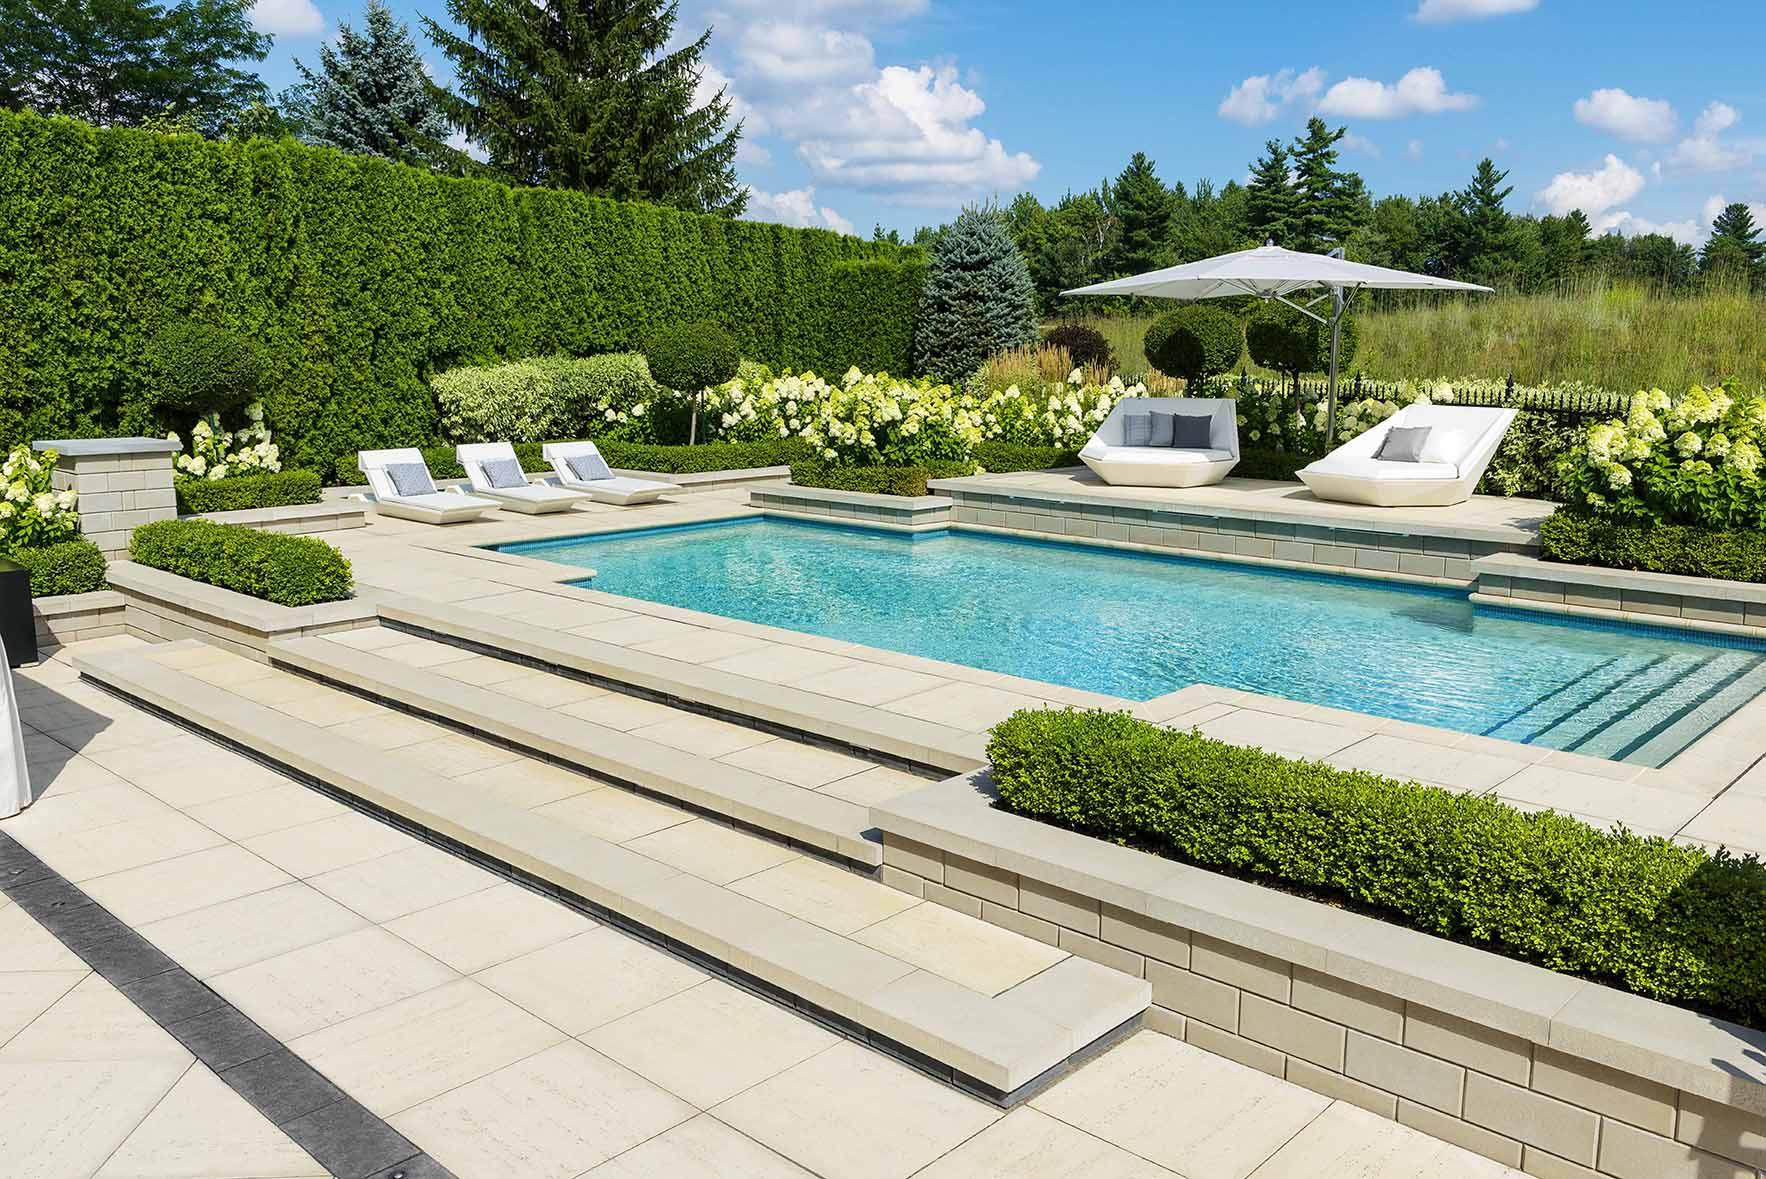 24 Inground Pool Landscaping Ideas